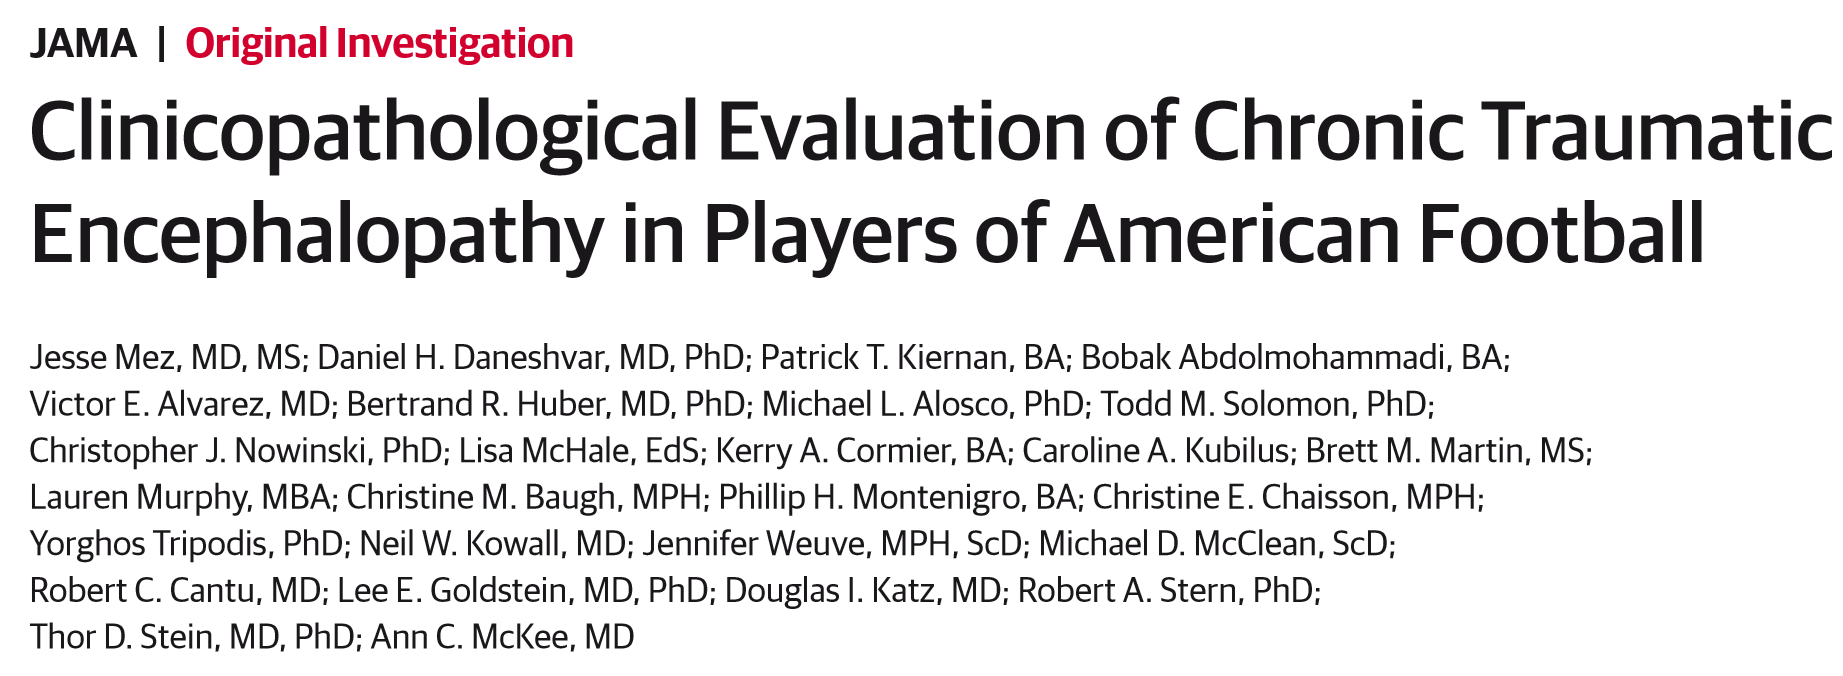 Clinicopathological Evaluation of Chronic Traumatic Encephalopathy in Players of American Football